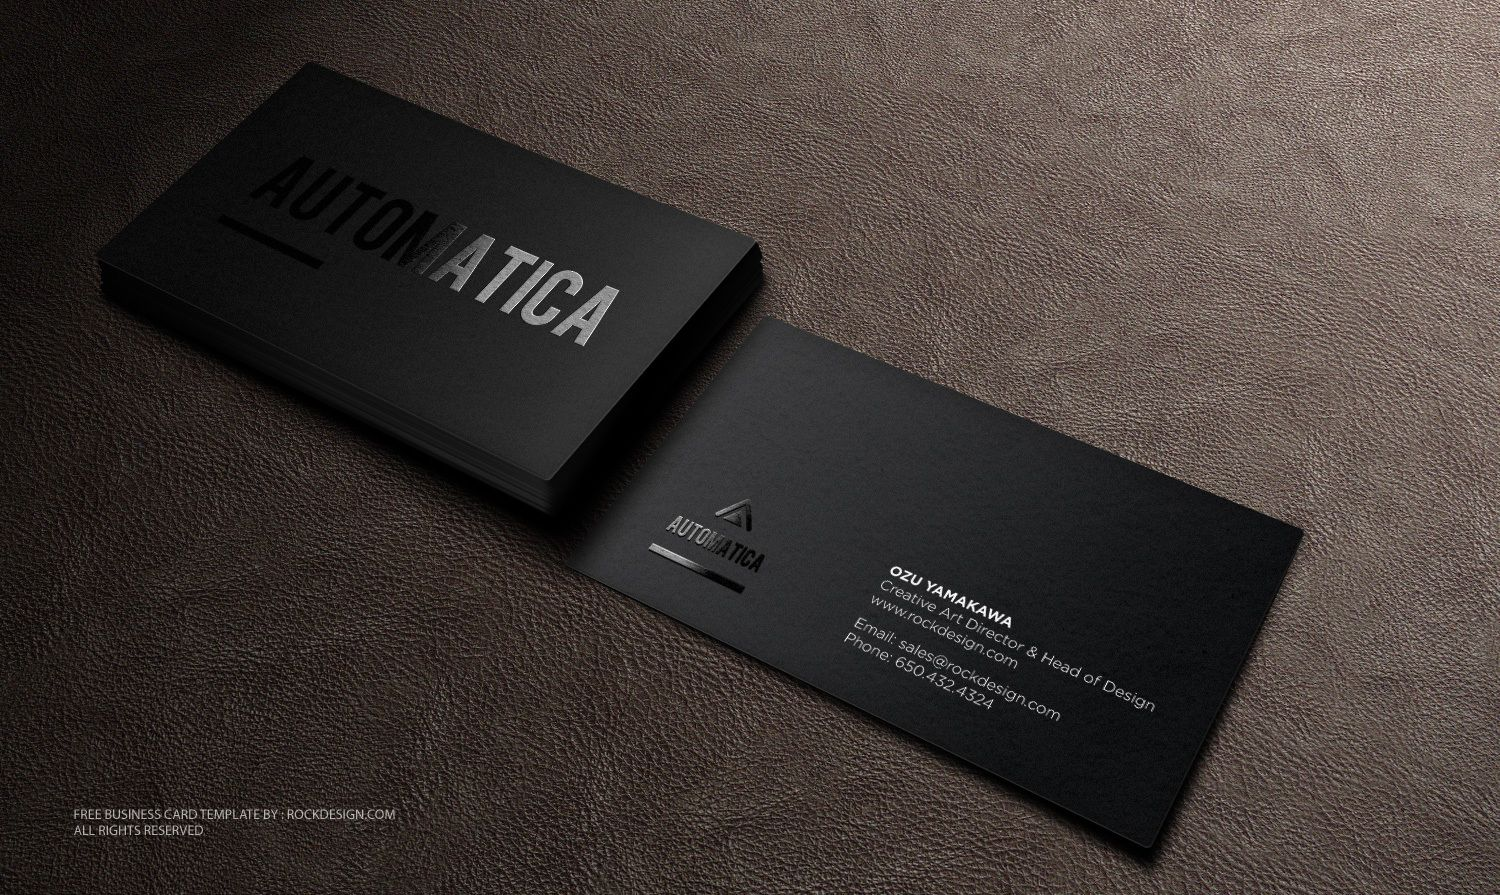 Black business card template download free design templates black business card template download free design templates friedricerecipe Choice Image